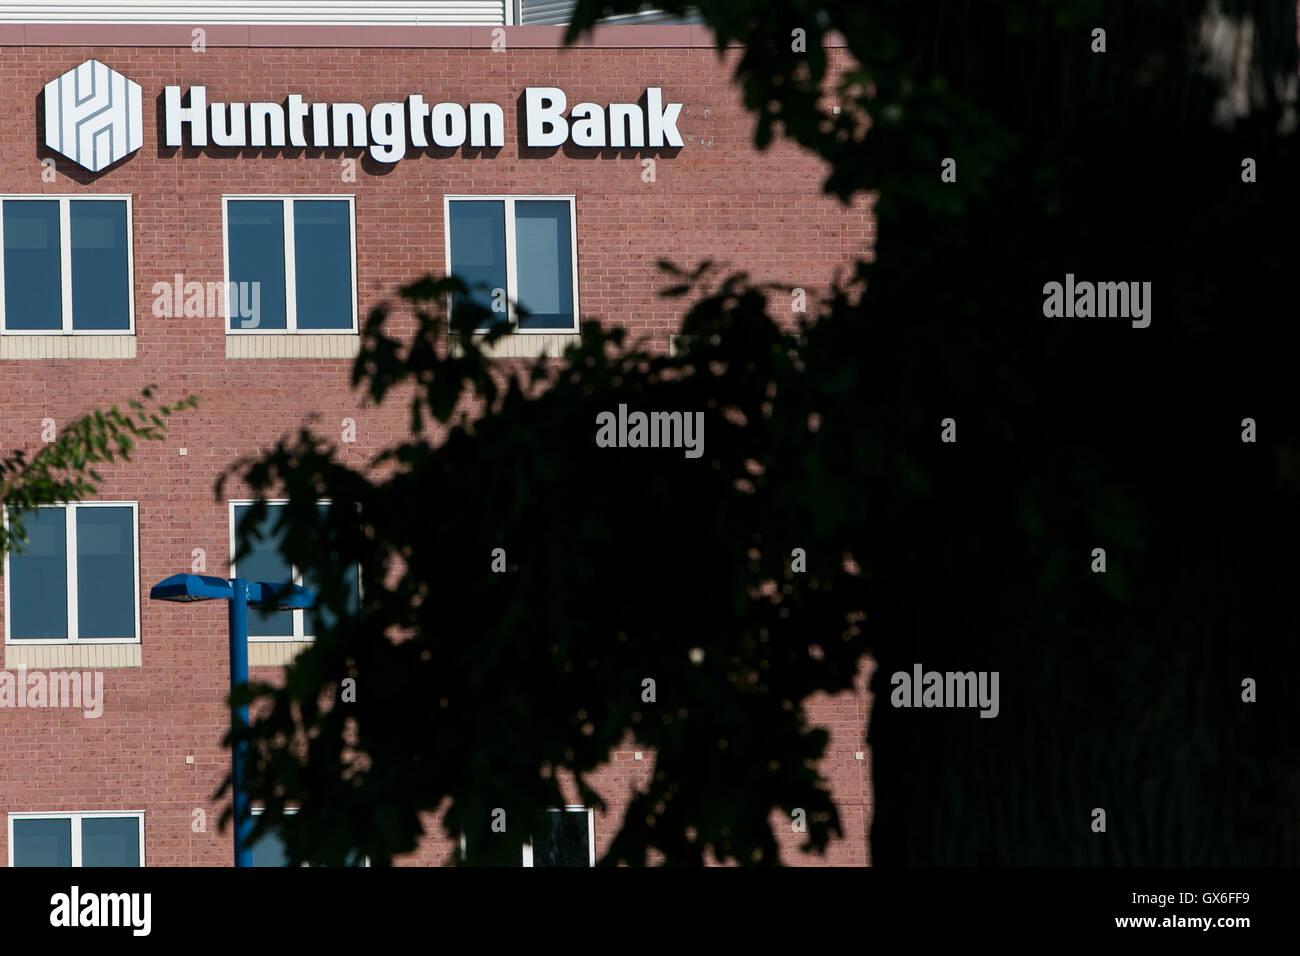 A logo sign outside of the headquarters of Huntington Bancshares, Inc., in Columbus, Ohio on July 23, 2016. - Stock Image